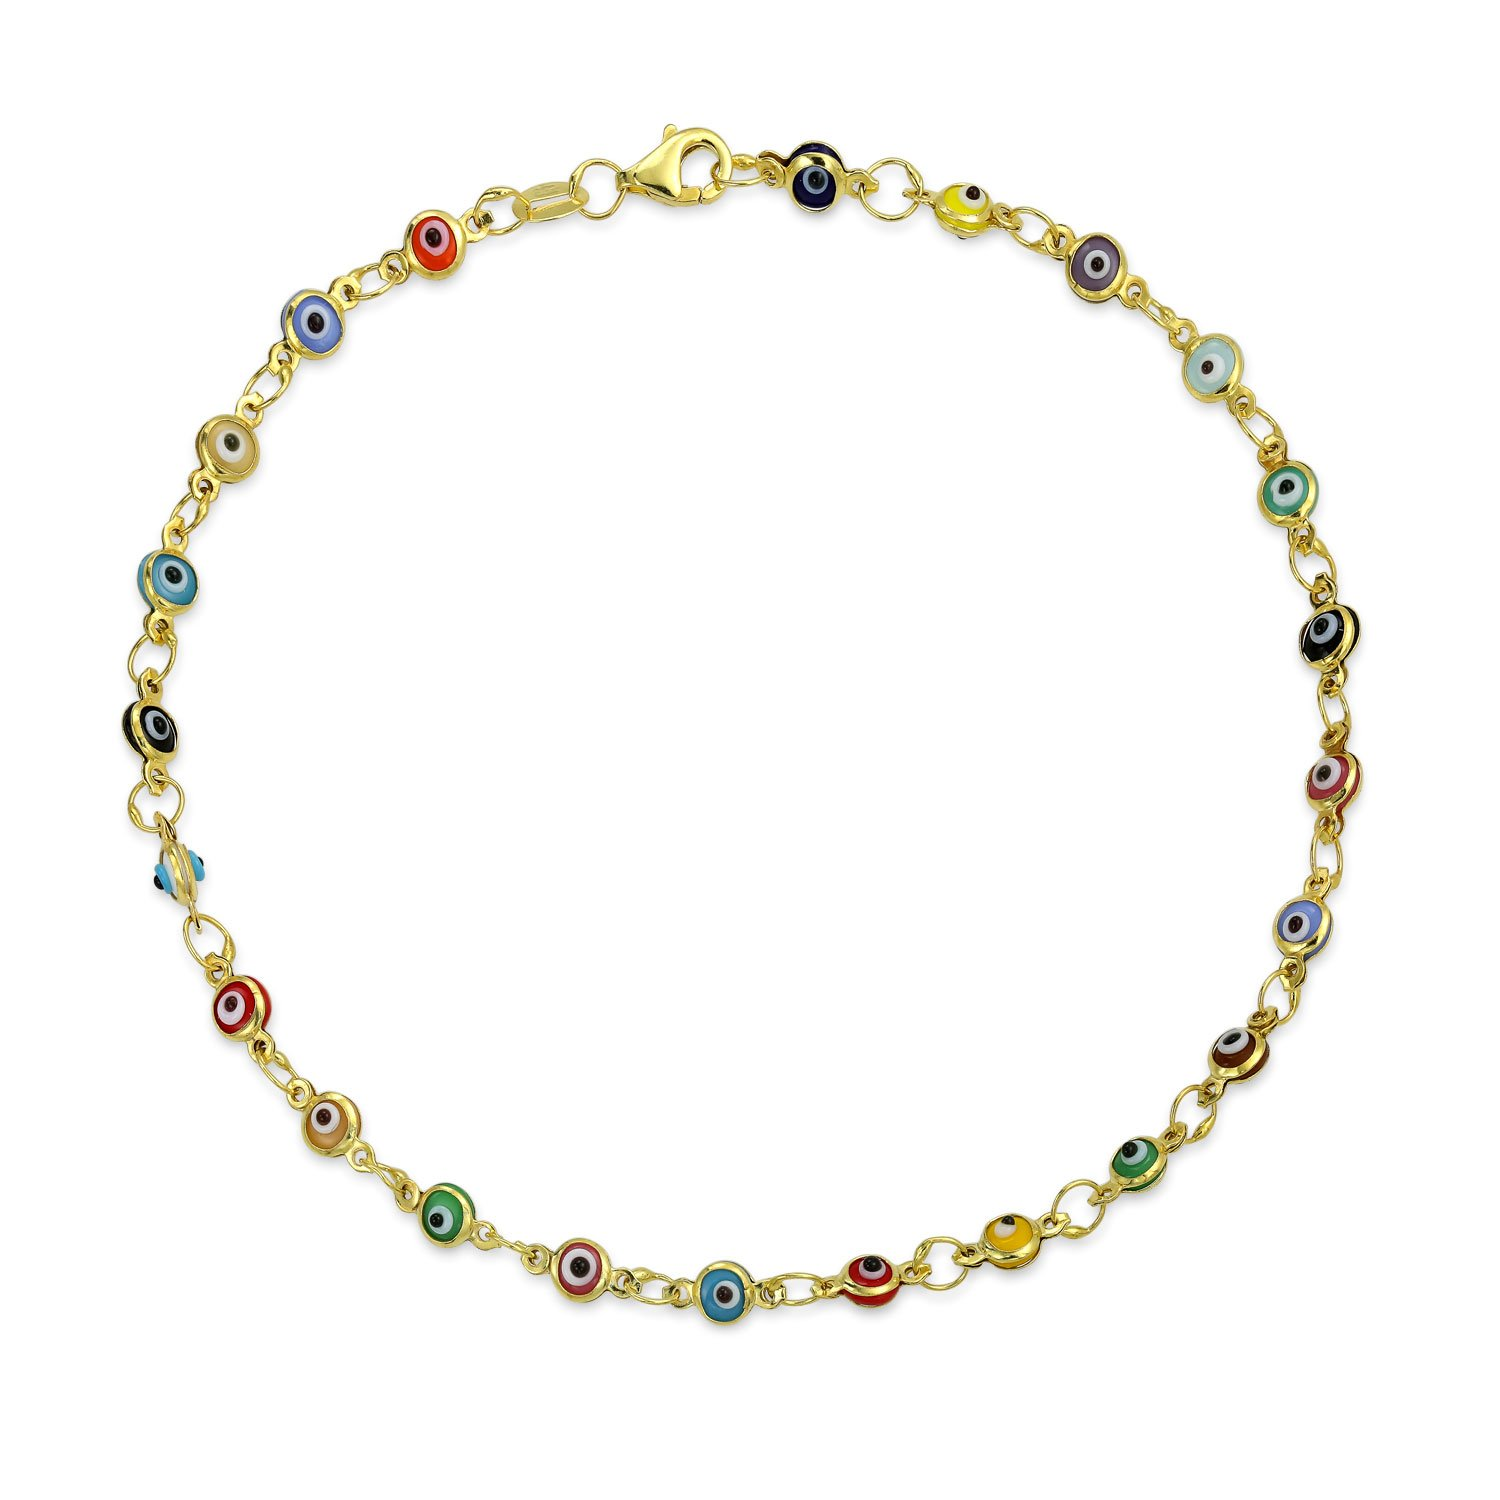 Bling Jewelry Multi Color Gold Plated 925 Silver Evil Eye Anklet 10 Inch IY-6121-A-G